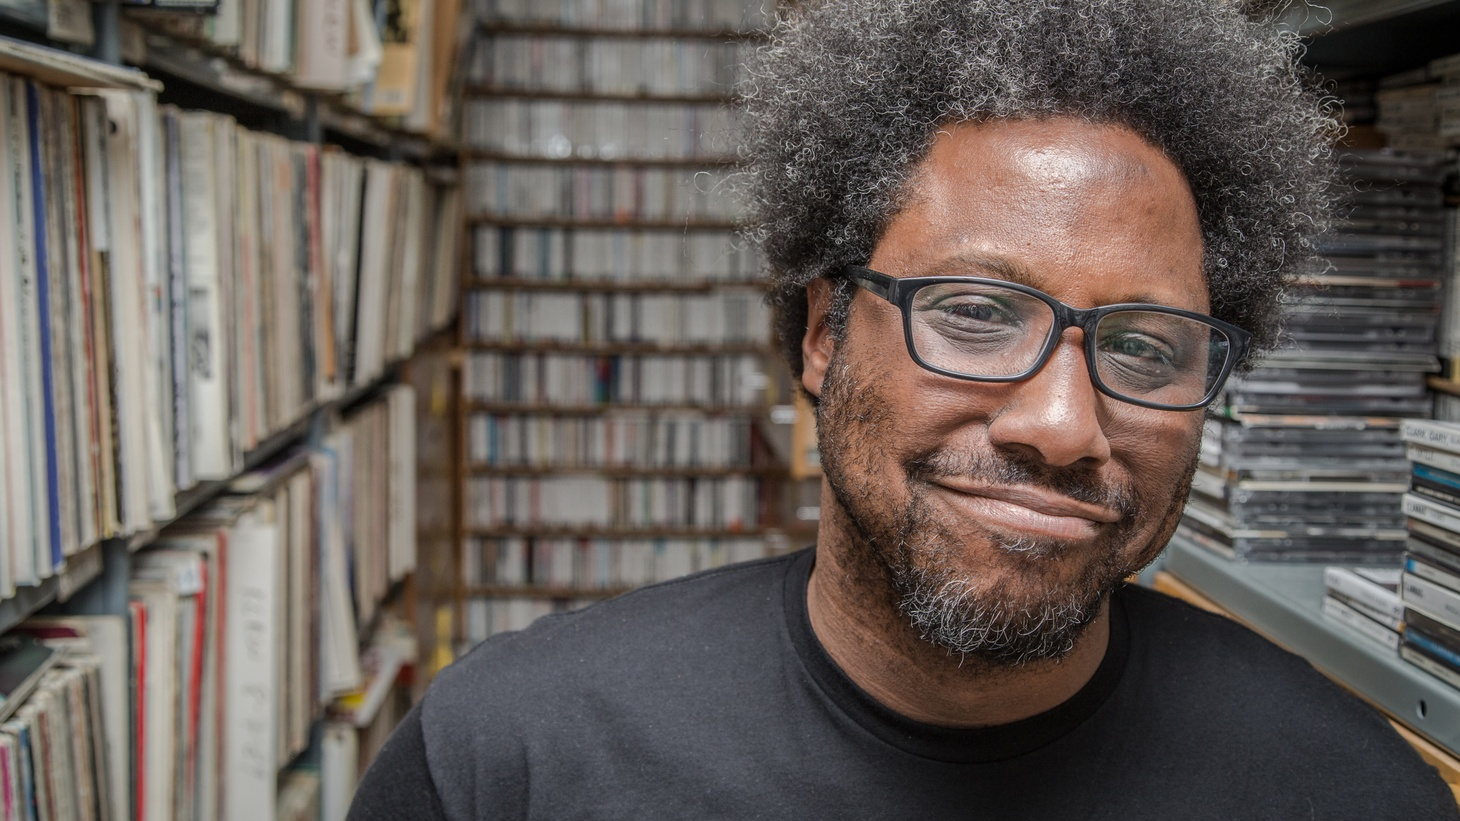 """Comedian W. Kamau Bell calls Jimi Hendrix the """"patron saint of black weirdos,"""" talks about how John Coltrane inspired his particular brand of comedy, and credits Rollins Band with pumping him up to do standup.Bell currently hosts the United Shades of America series on CNN and has a stand up special on Showtime called Semi-Prominent Negro."""